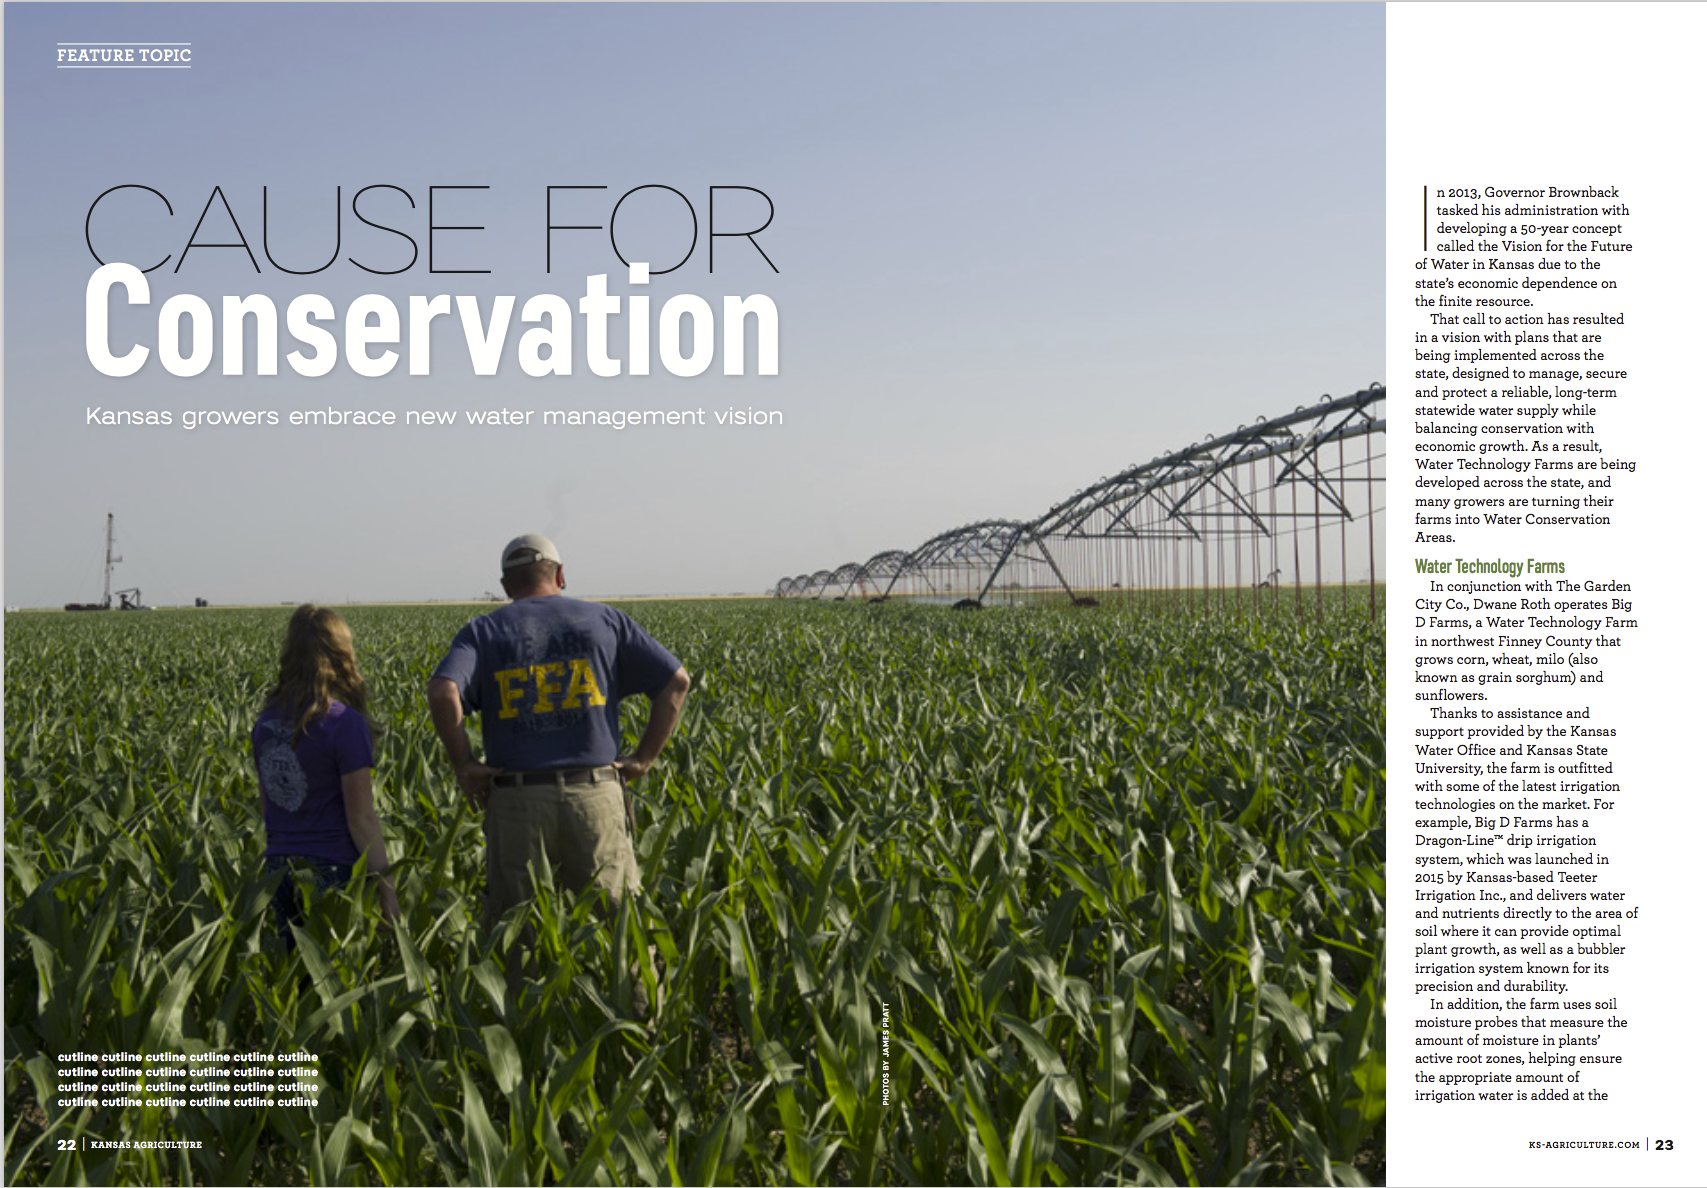 Dwayne Roth and his daughter Grace check out the corn crop on their water technology farm in western Kansas.